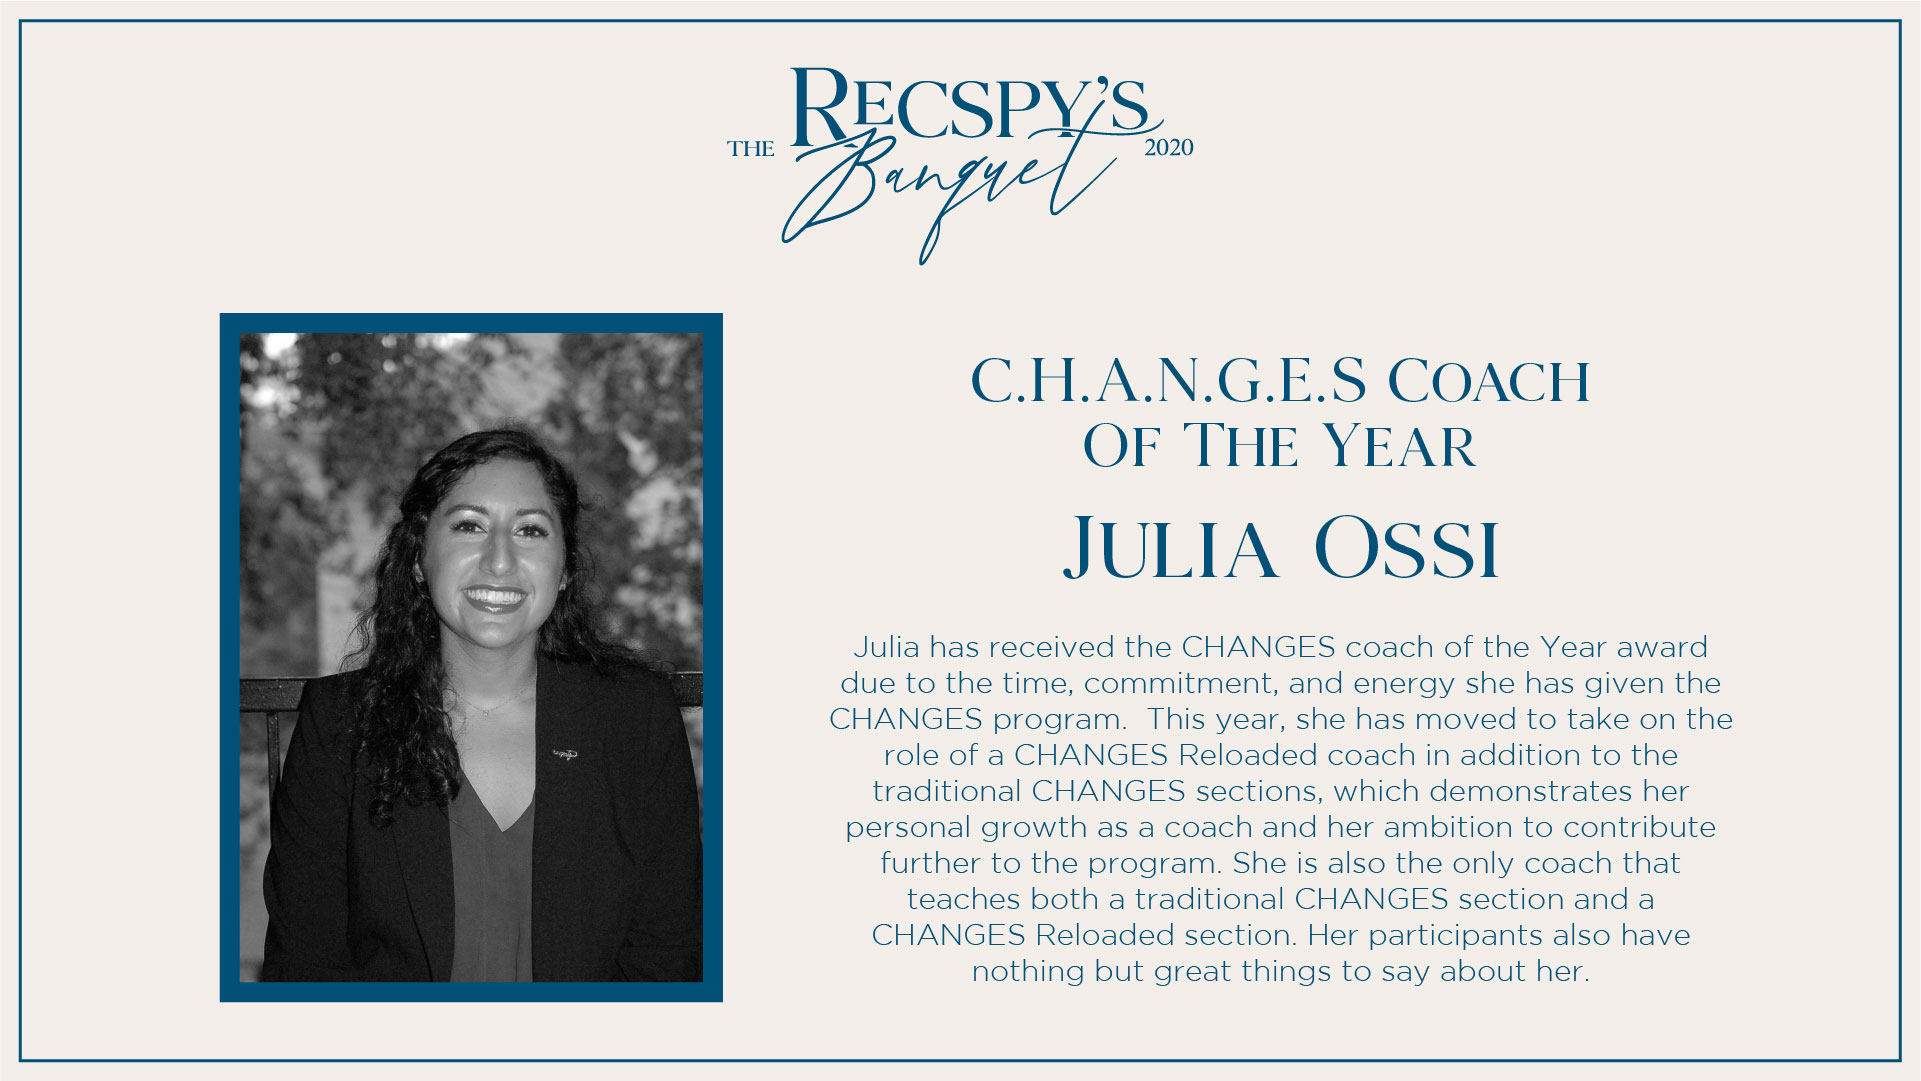 Julia Ossi: CHANGES Coach of the Year